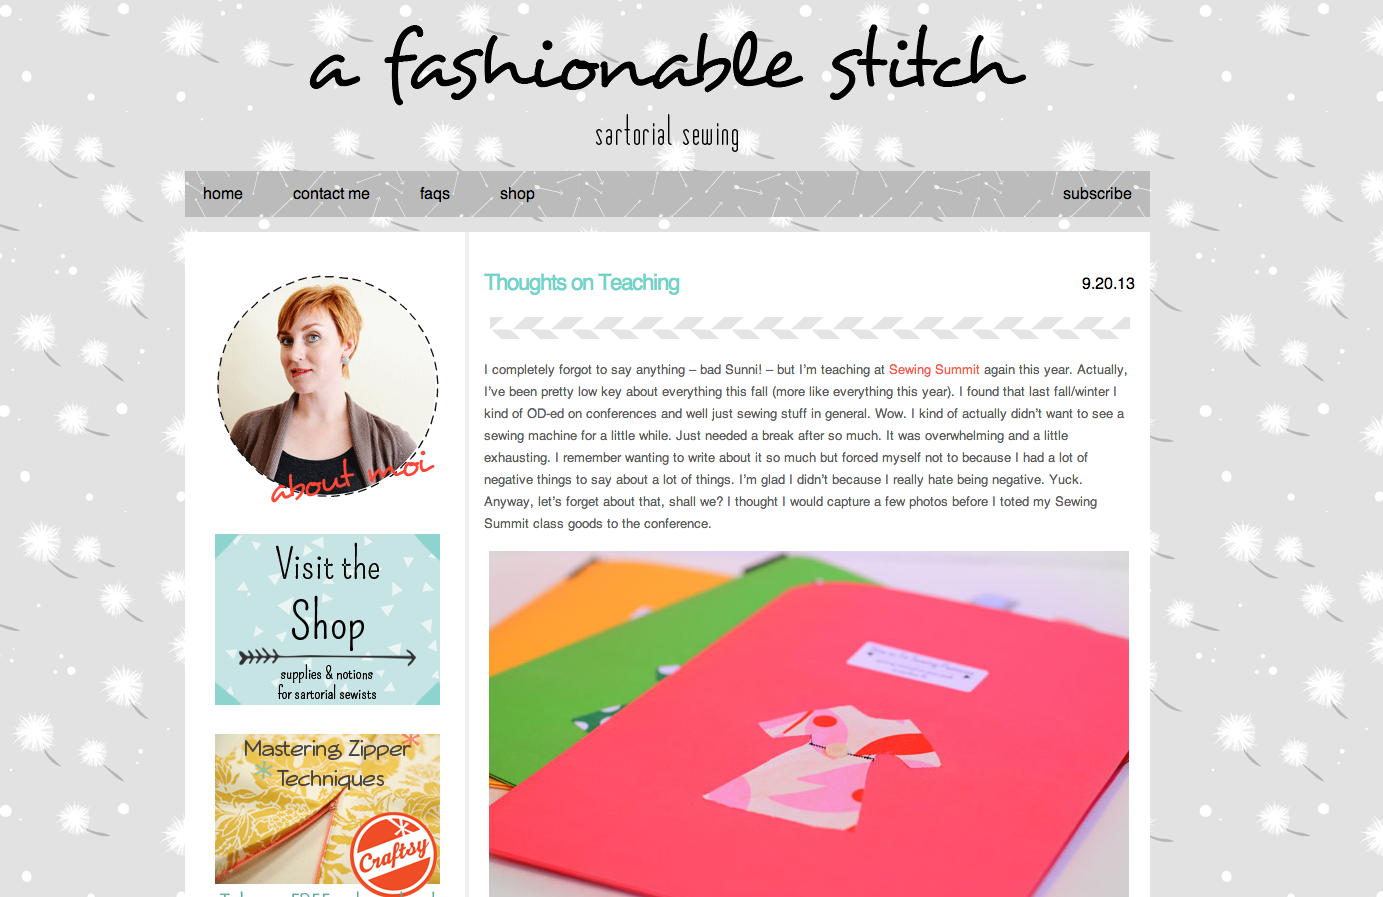 fashionable stitch blog